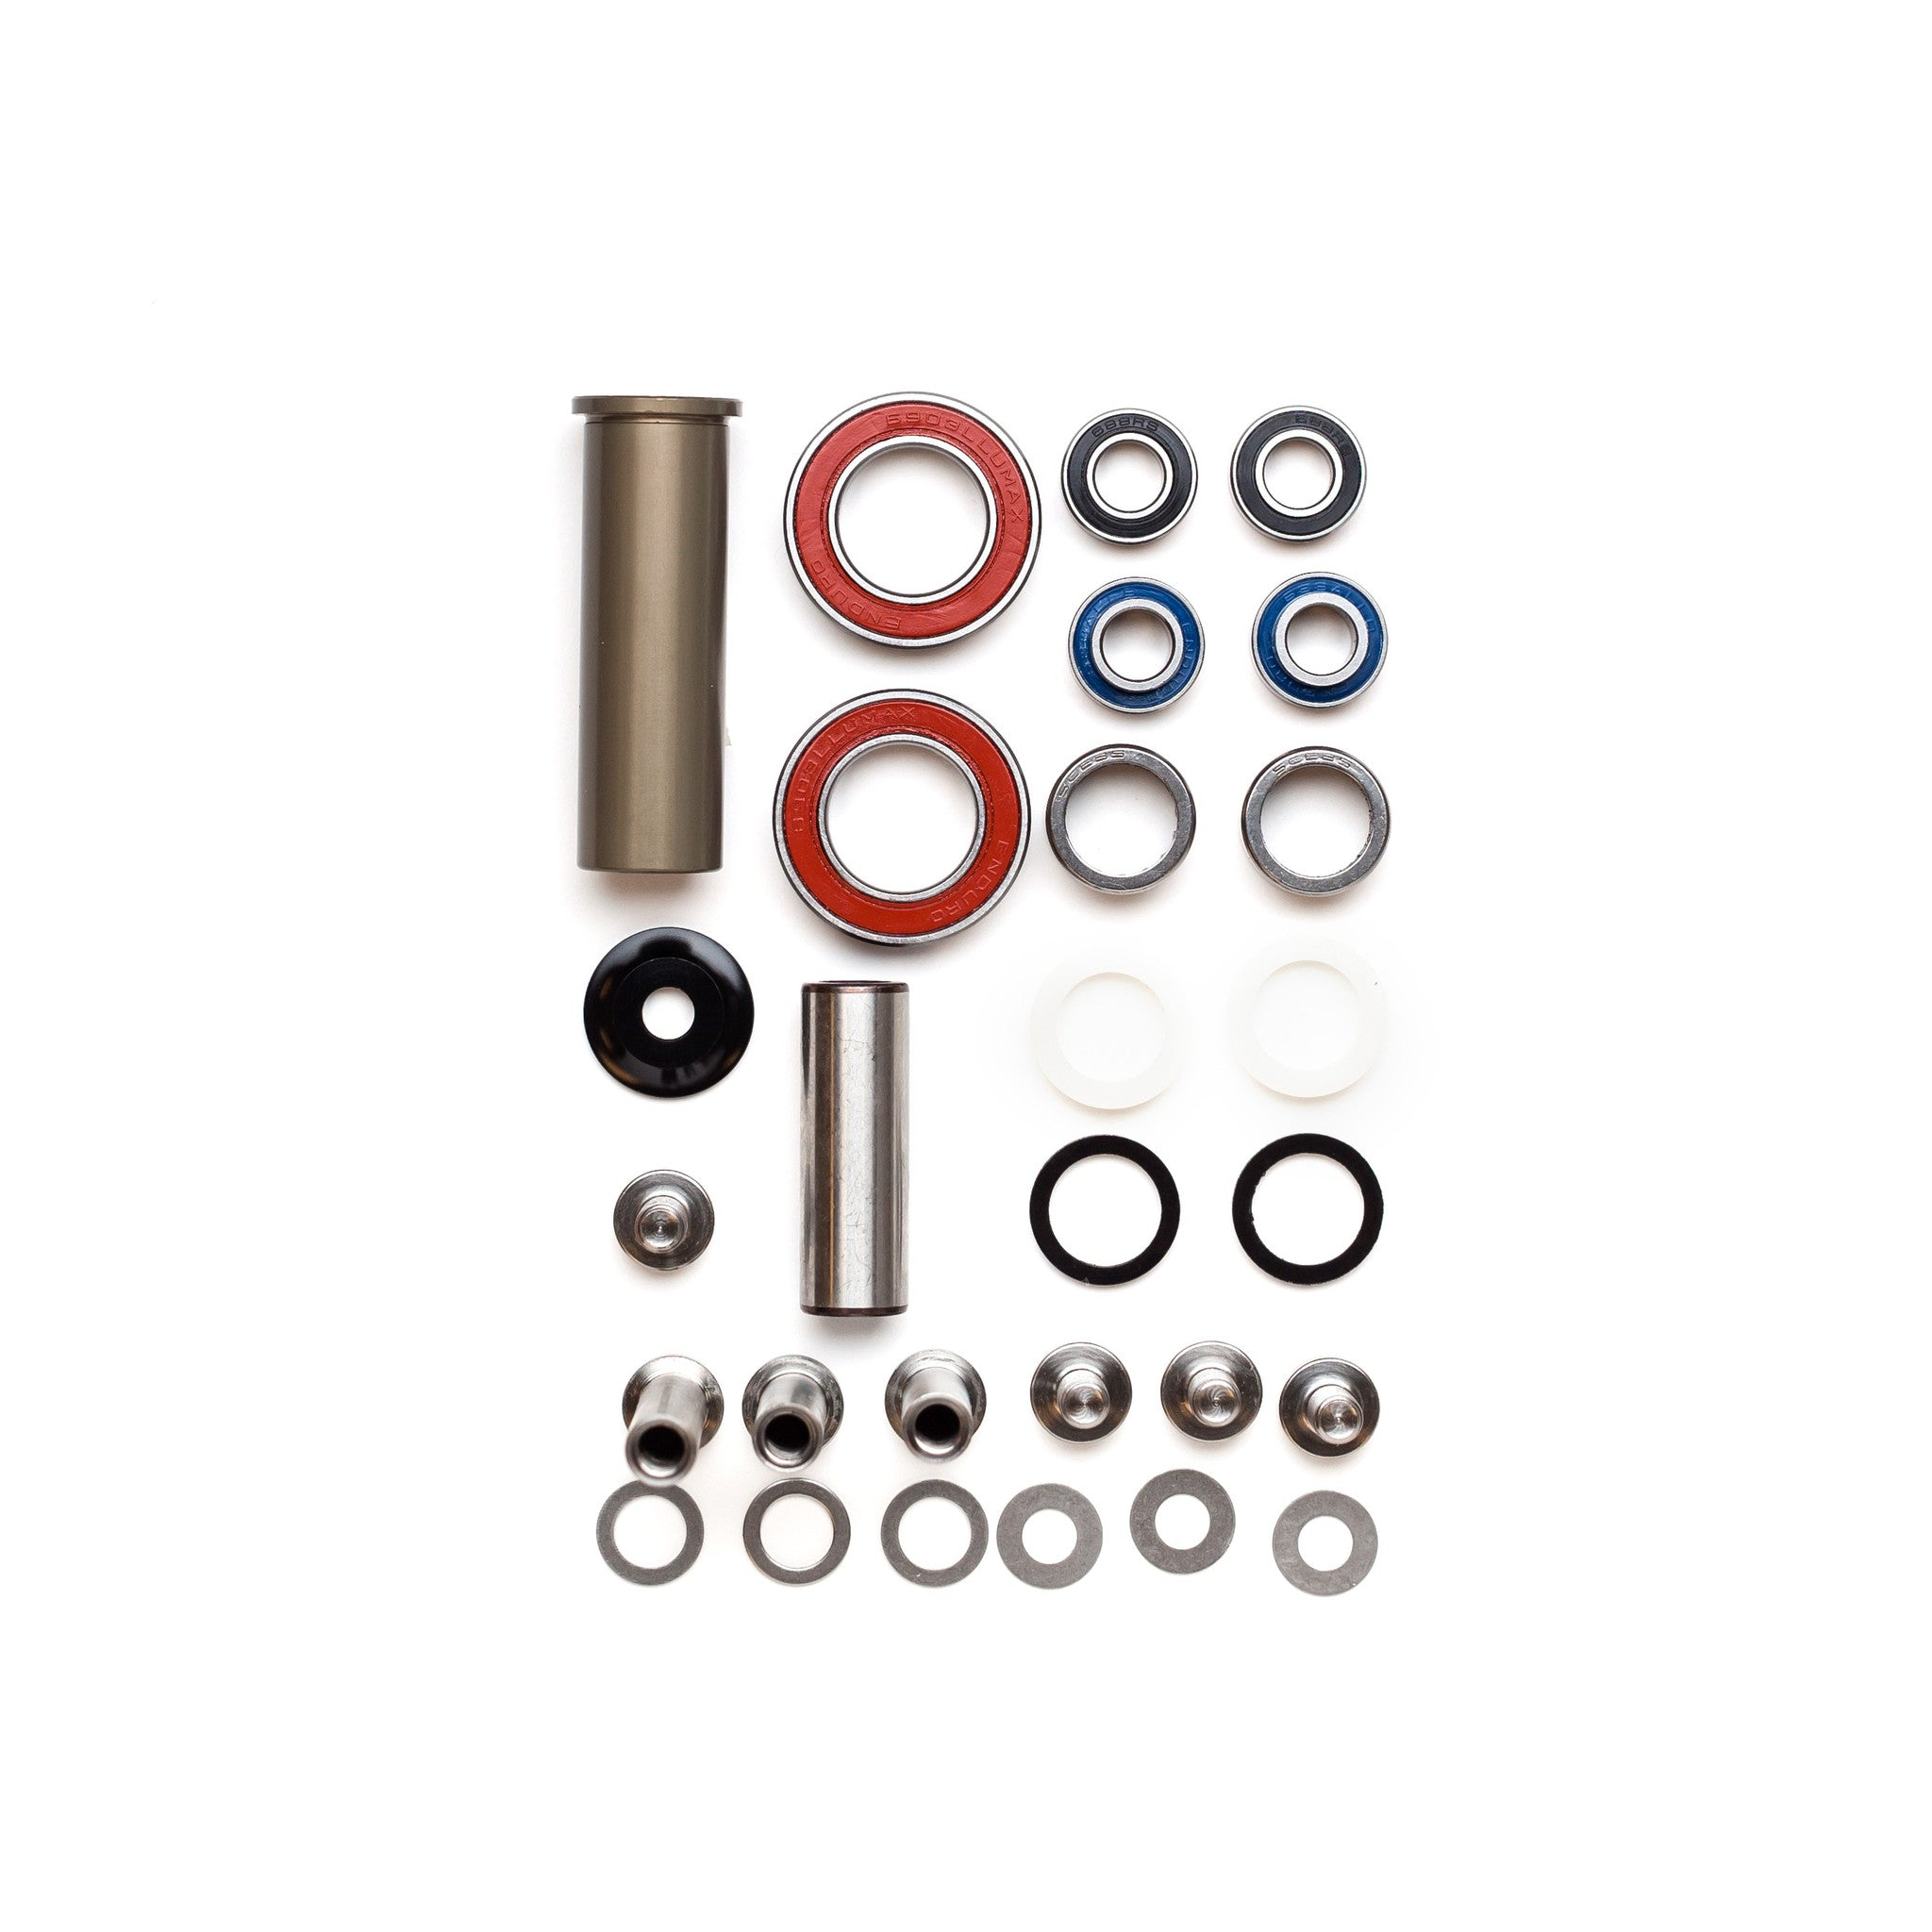 Yeti Parts - ASR 06-07 Master rebuild Kit